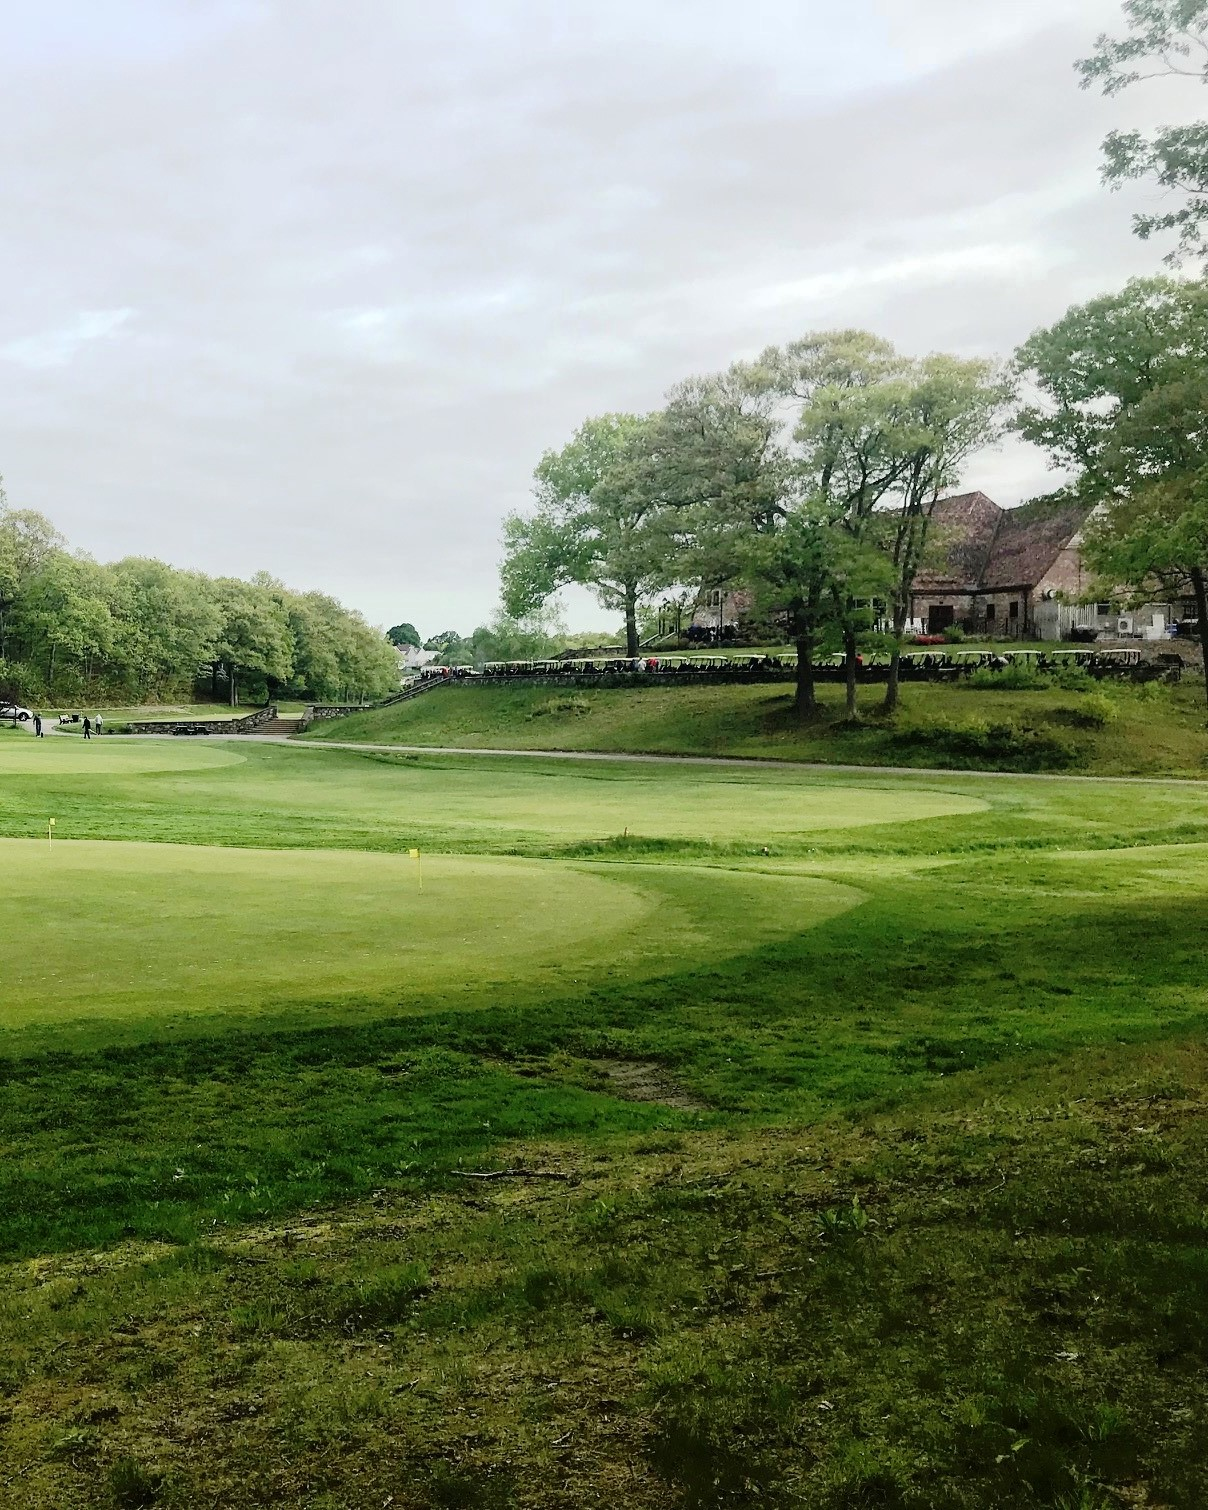 The George Wright Golf Course in Hyde Park awaits this year's players. (Photo courtesy of Jon Seamans, Boston Parks & Recreation Dept.)